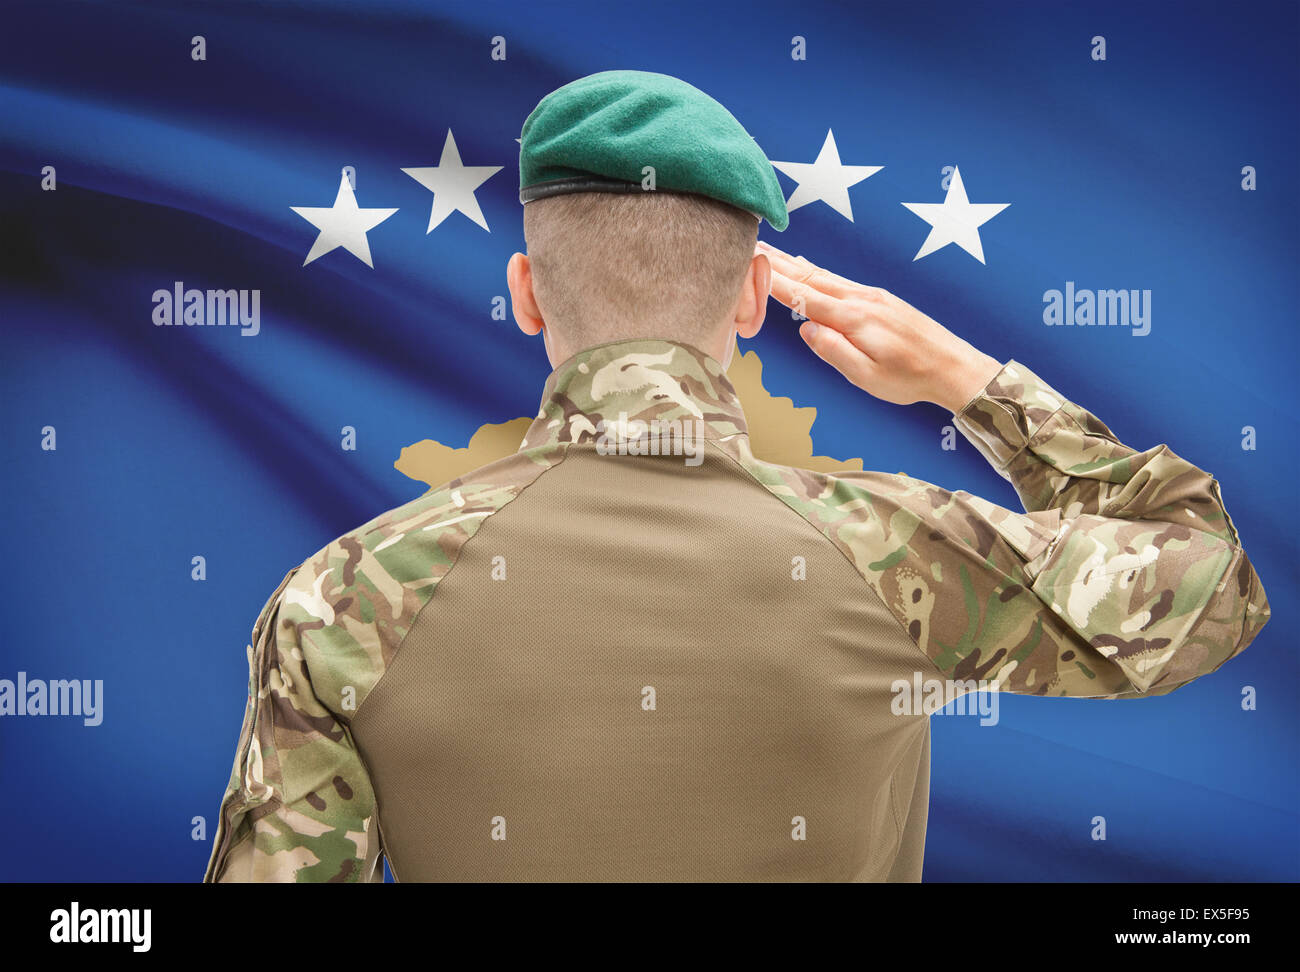 Soldier in hat facing national flag series - Kosovo Stock Photo